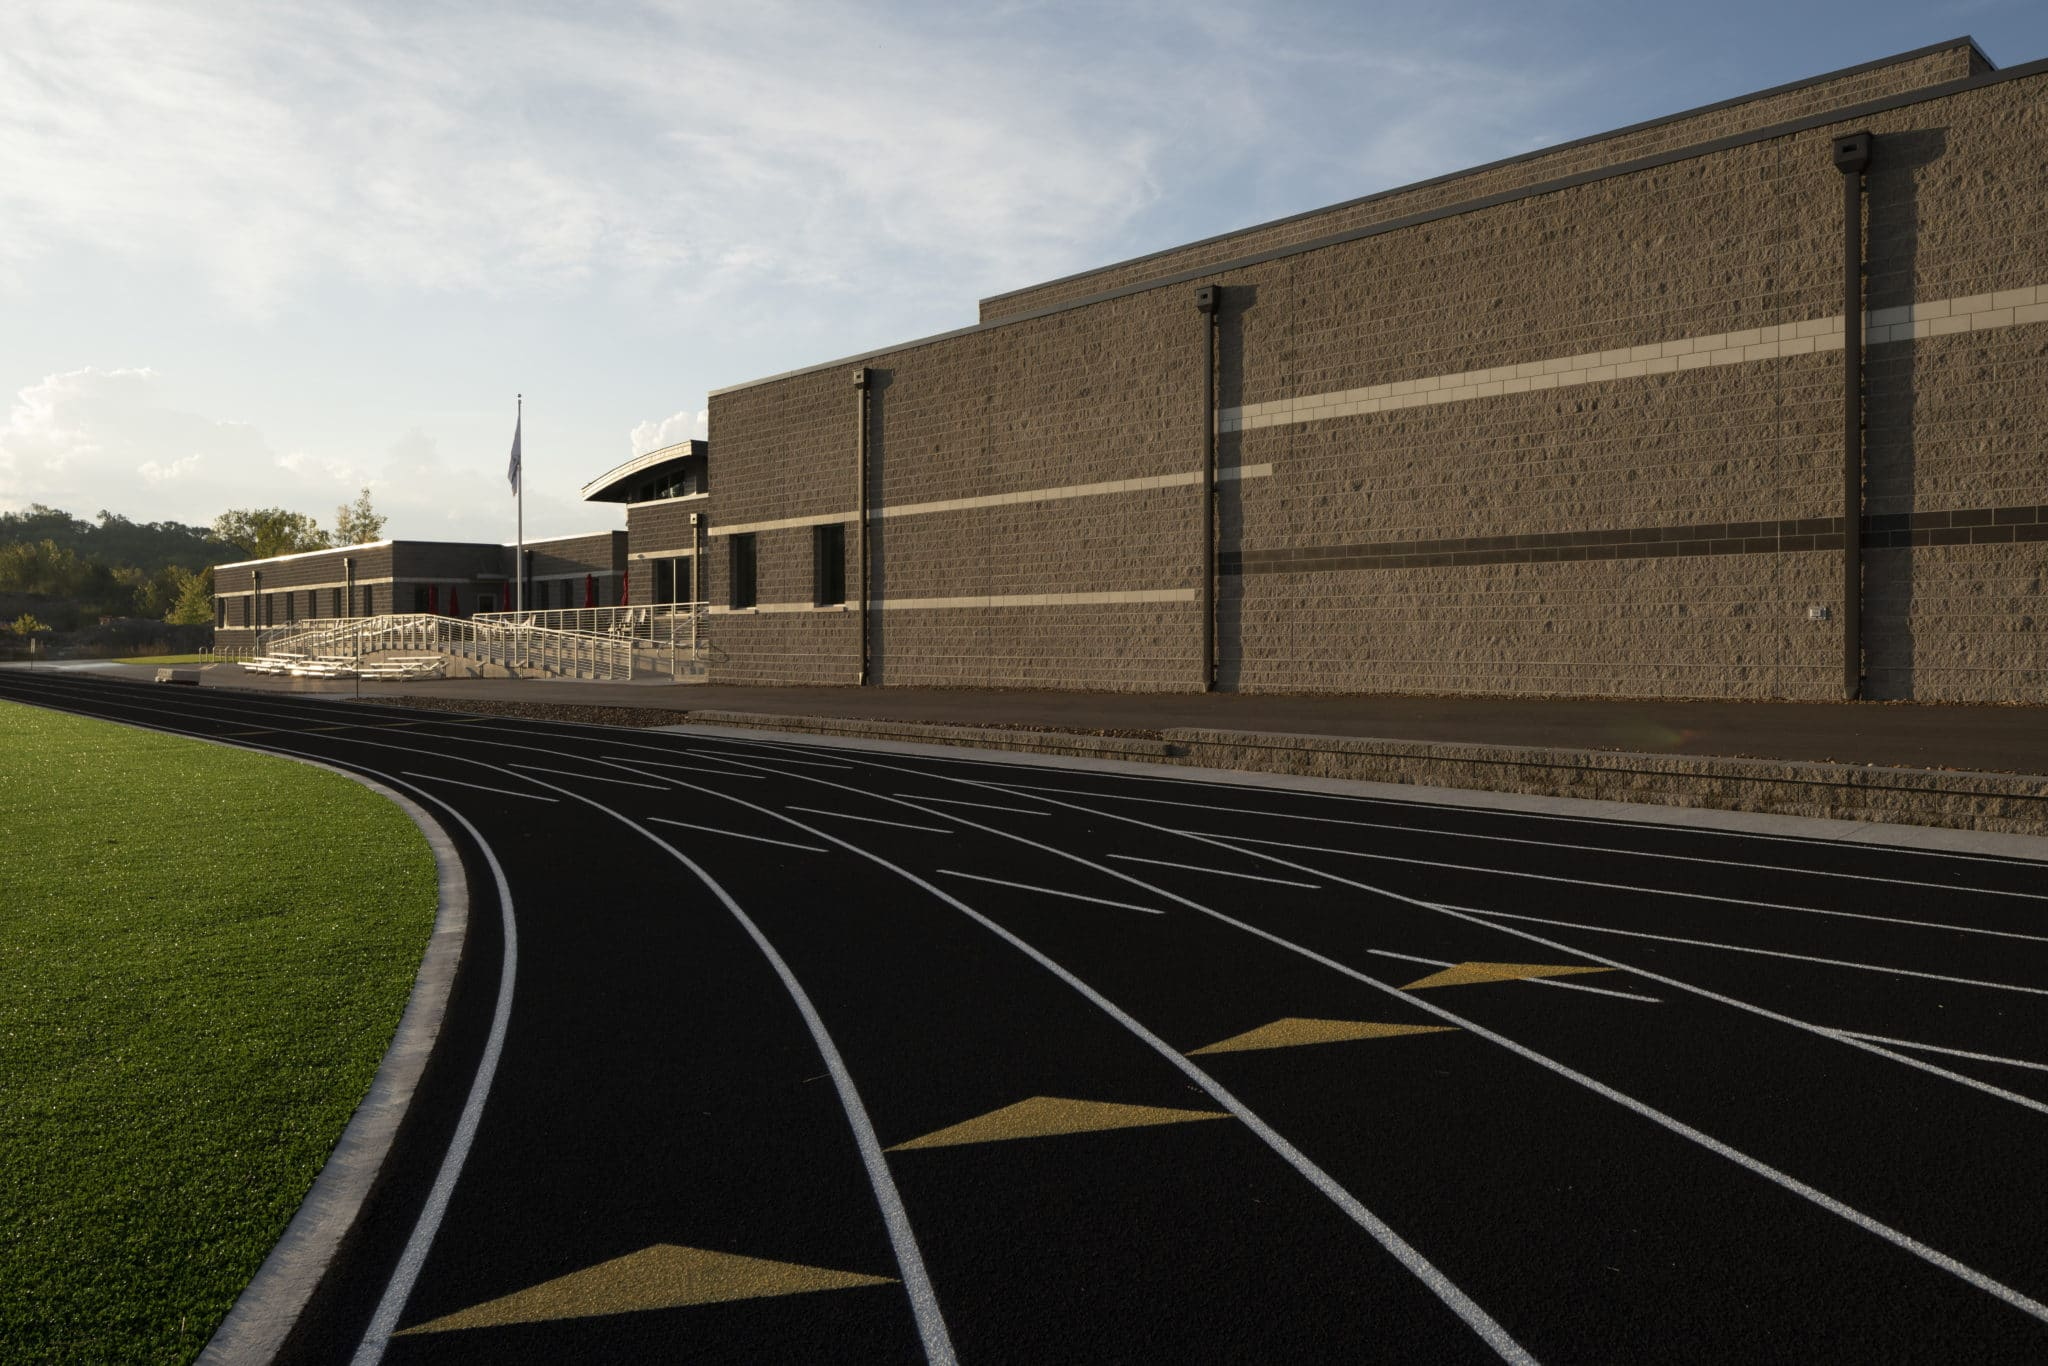 An exterior photo of the track at the Training for Life Campus